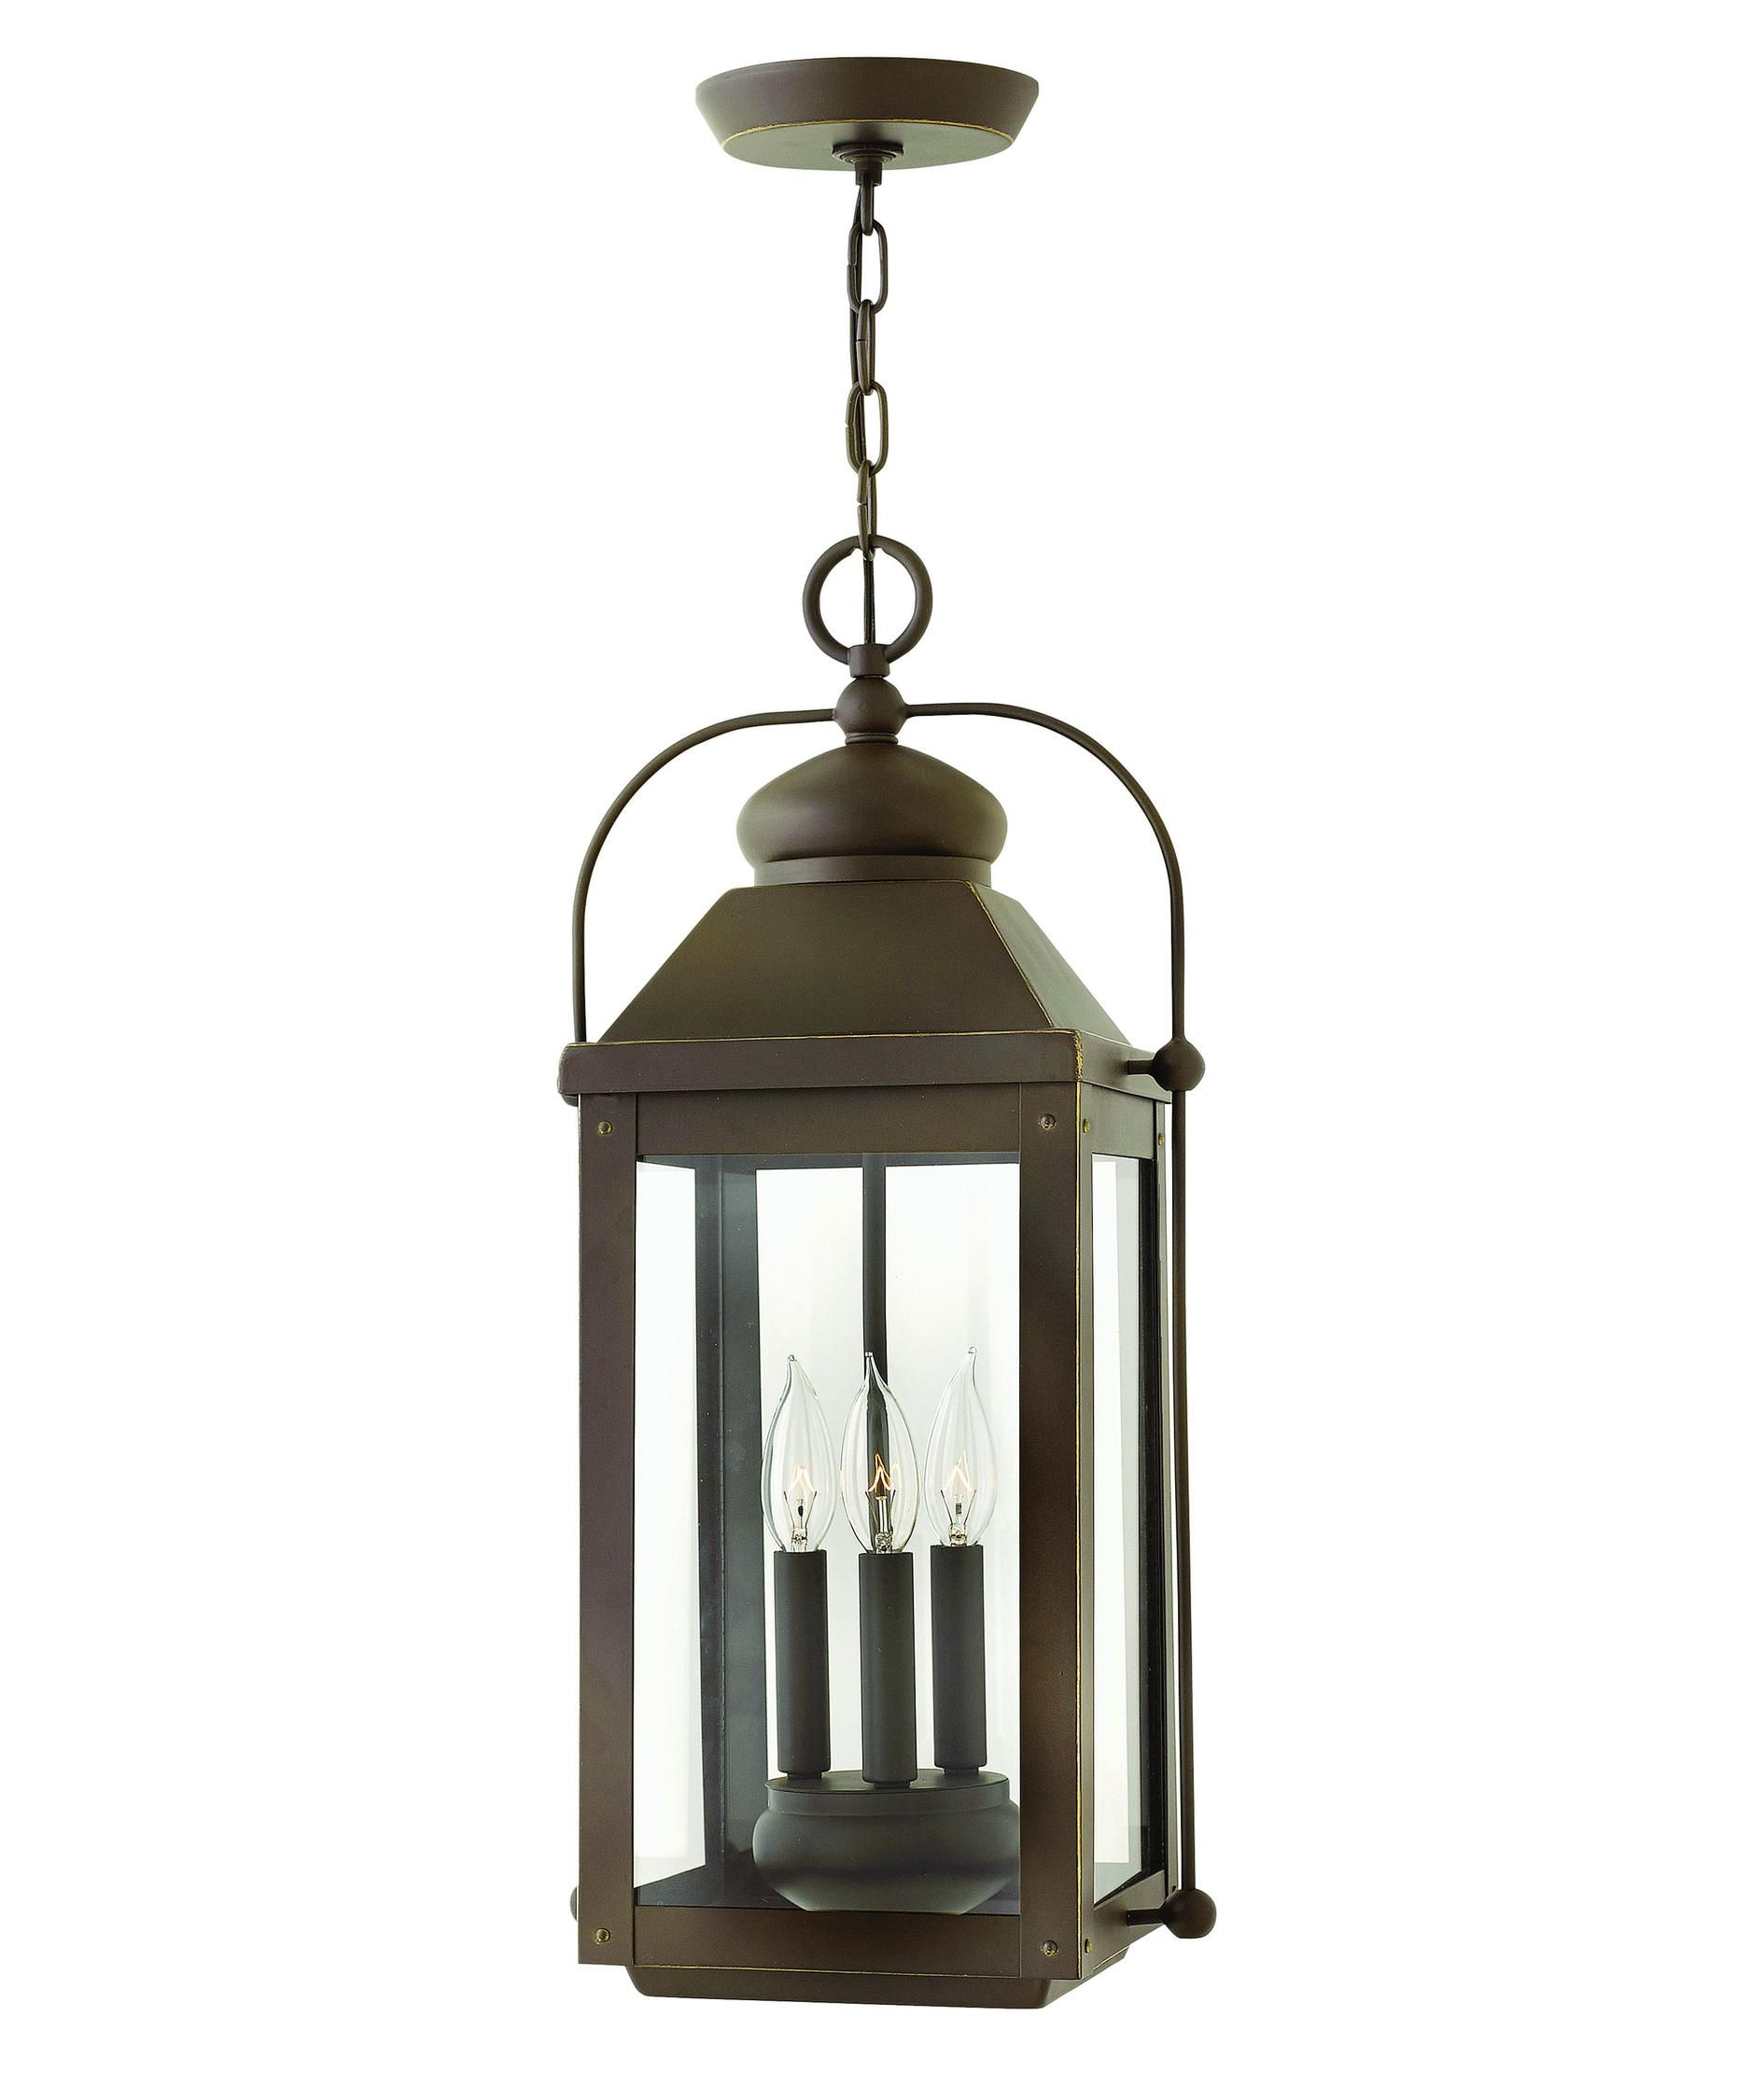 Hinkley Lighting Anchorage 11 Inch Wide 3 Light Outdoor Hanging Lantern Capitol 1